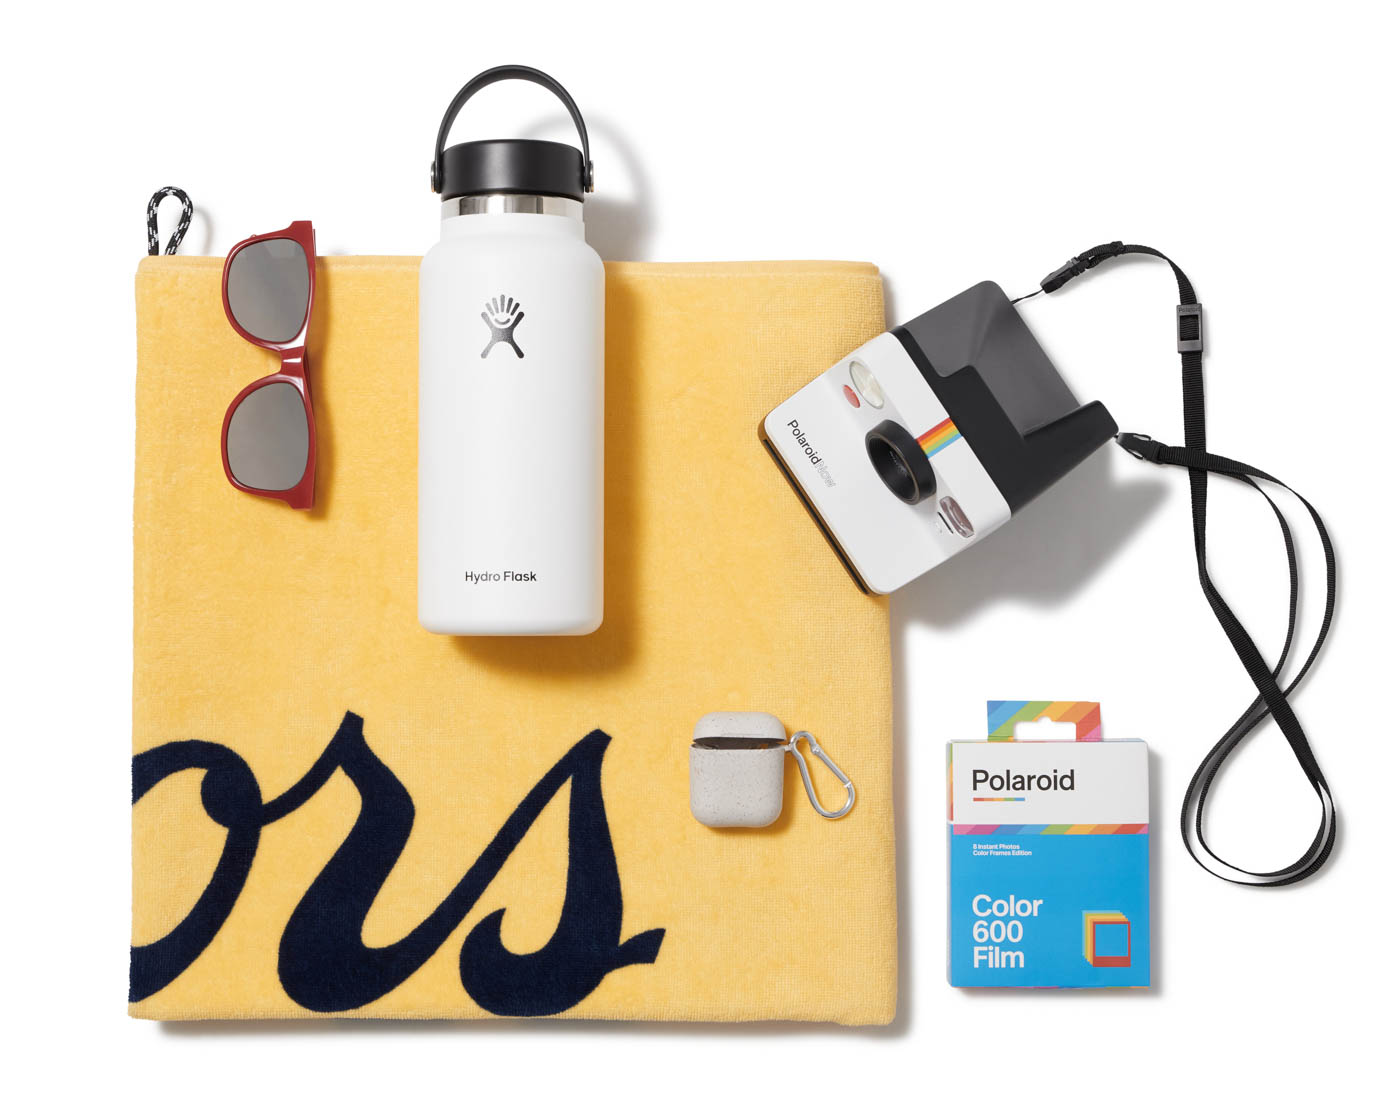 Tillys-editorial-apparel-clothing-shirt-shoes-damion-lloyd-commercial-photography-product-orange-county-los-angeles-hydroflask-nike-coors-towel-airpods-polaroid